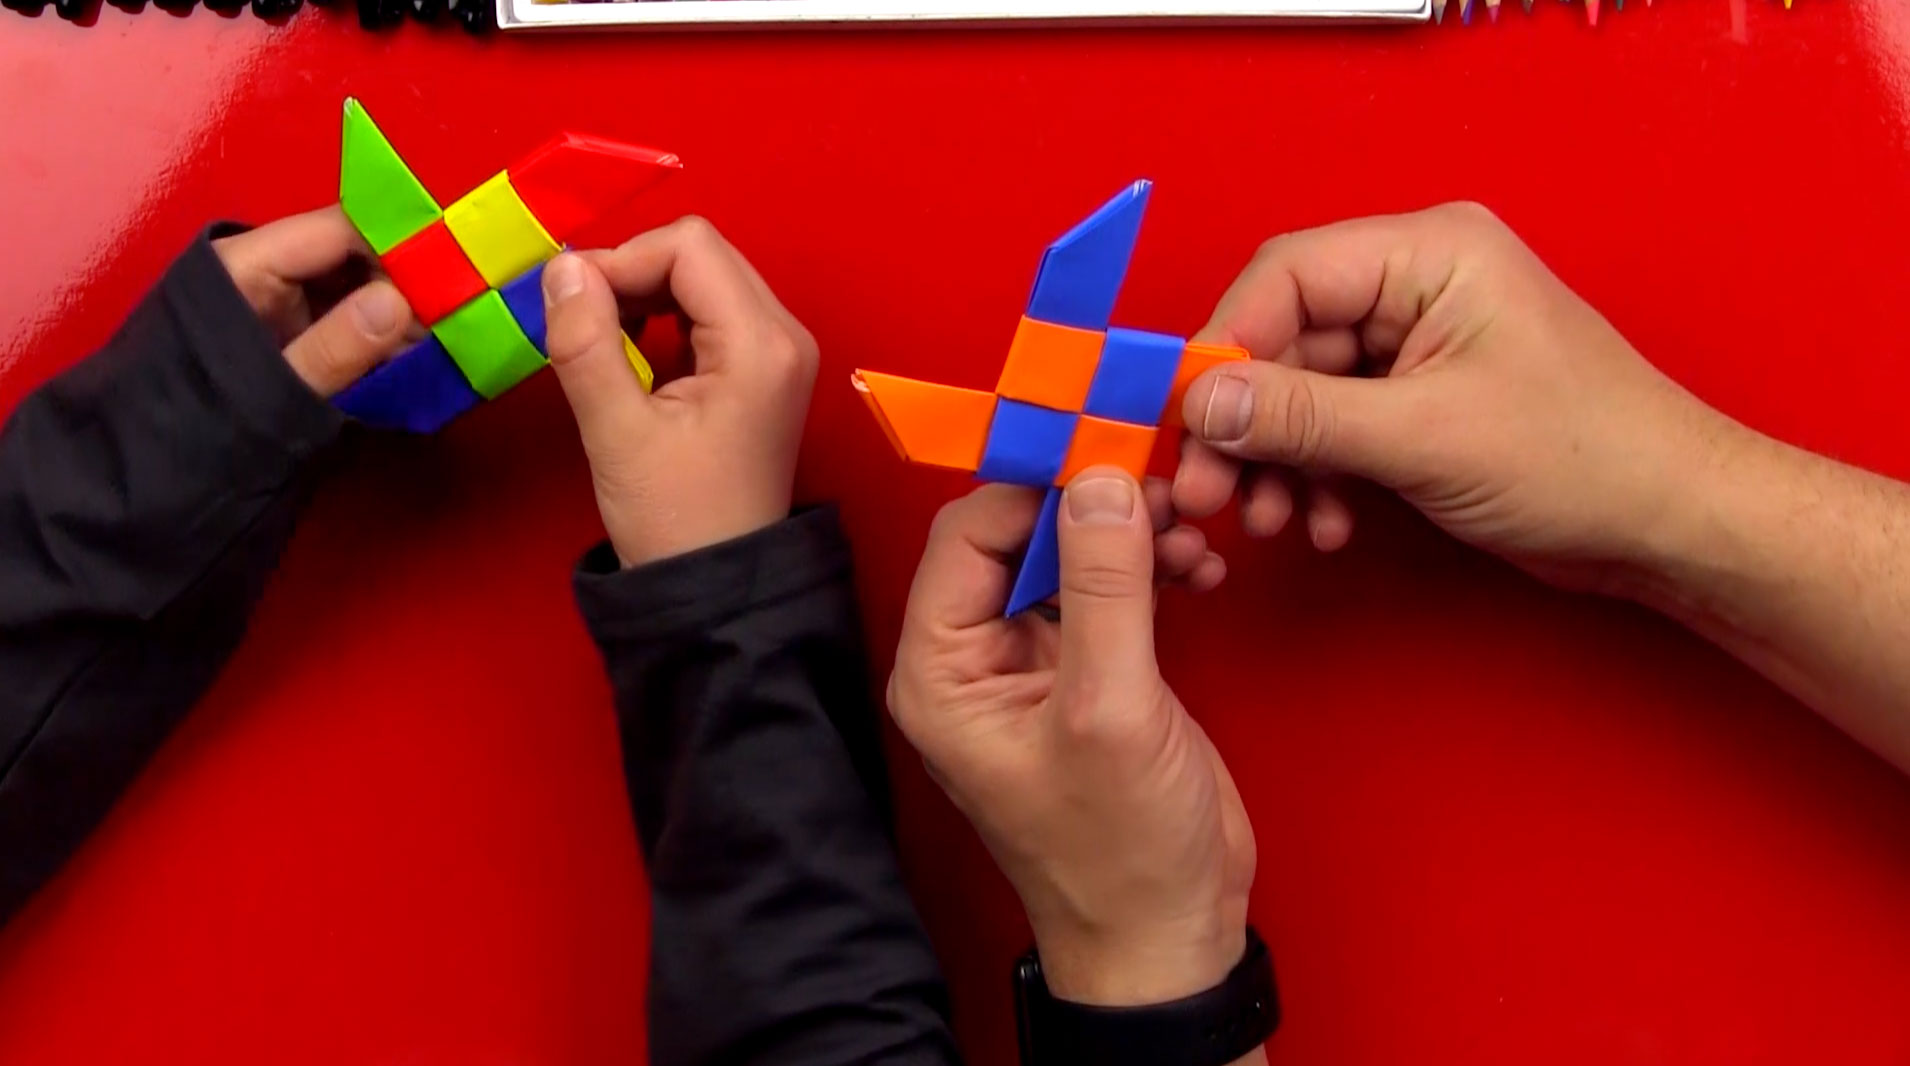 How To Fold An Origami Throwing Star